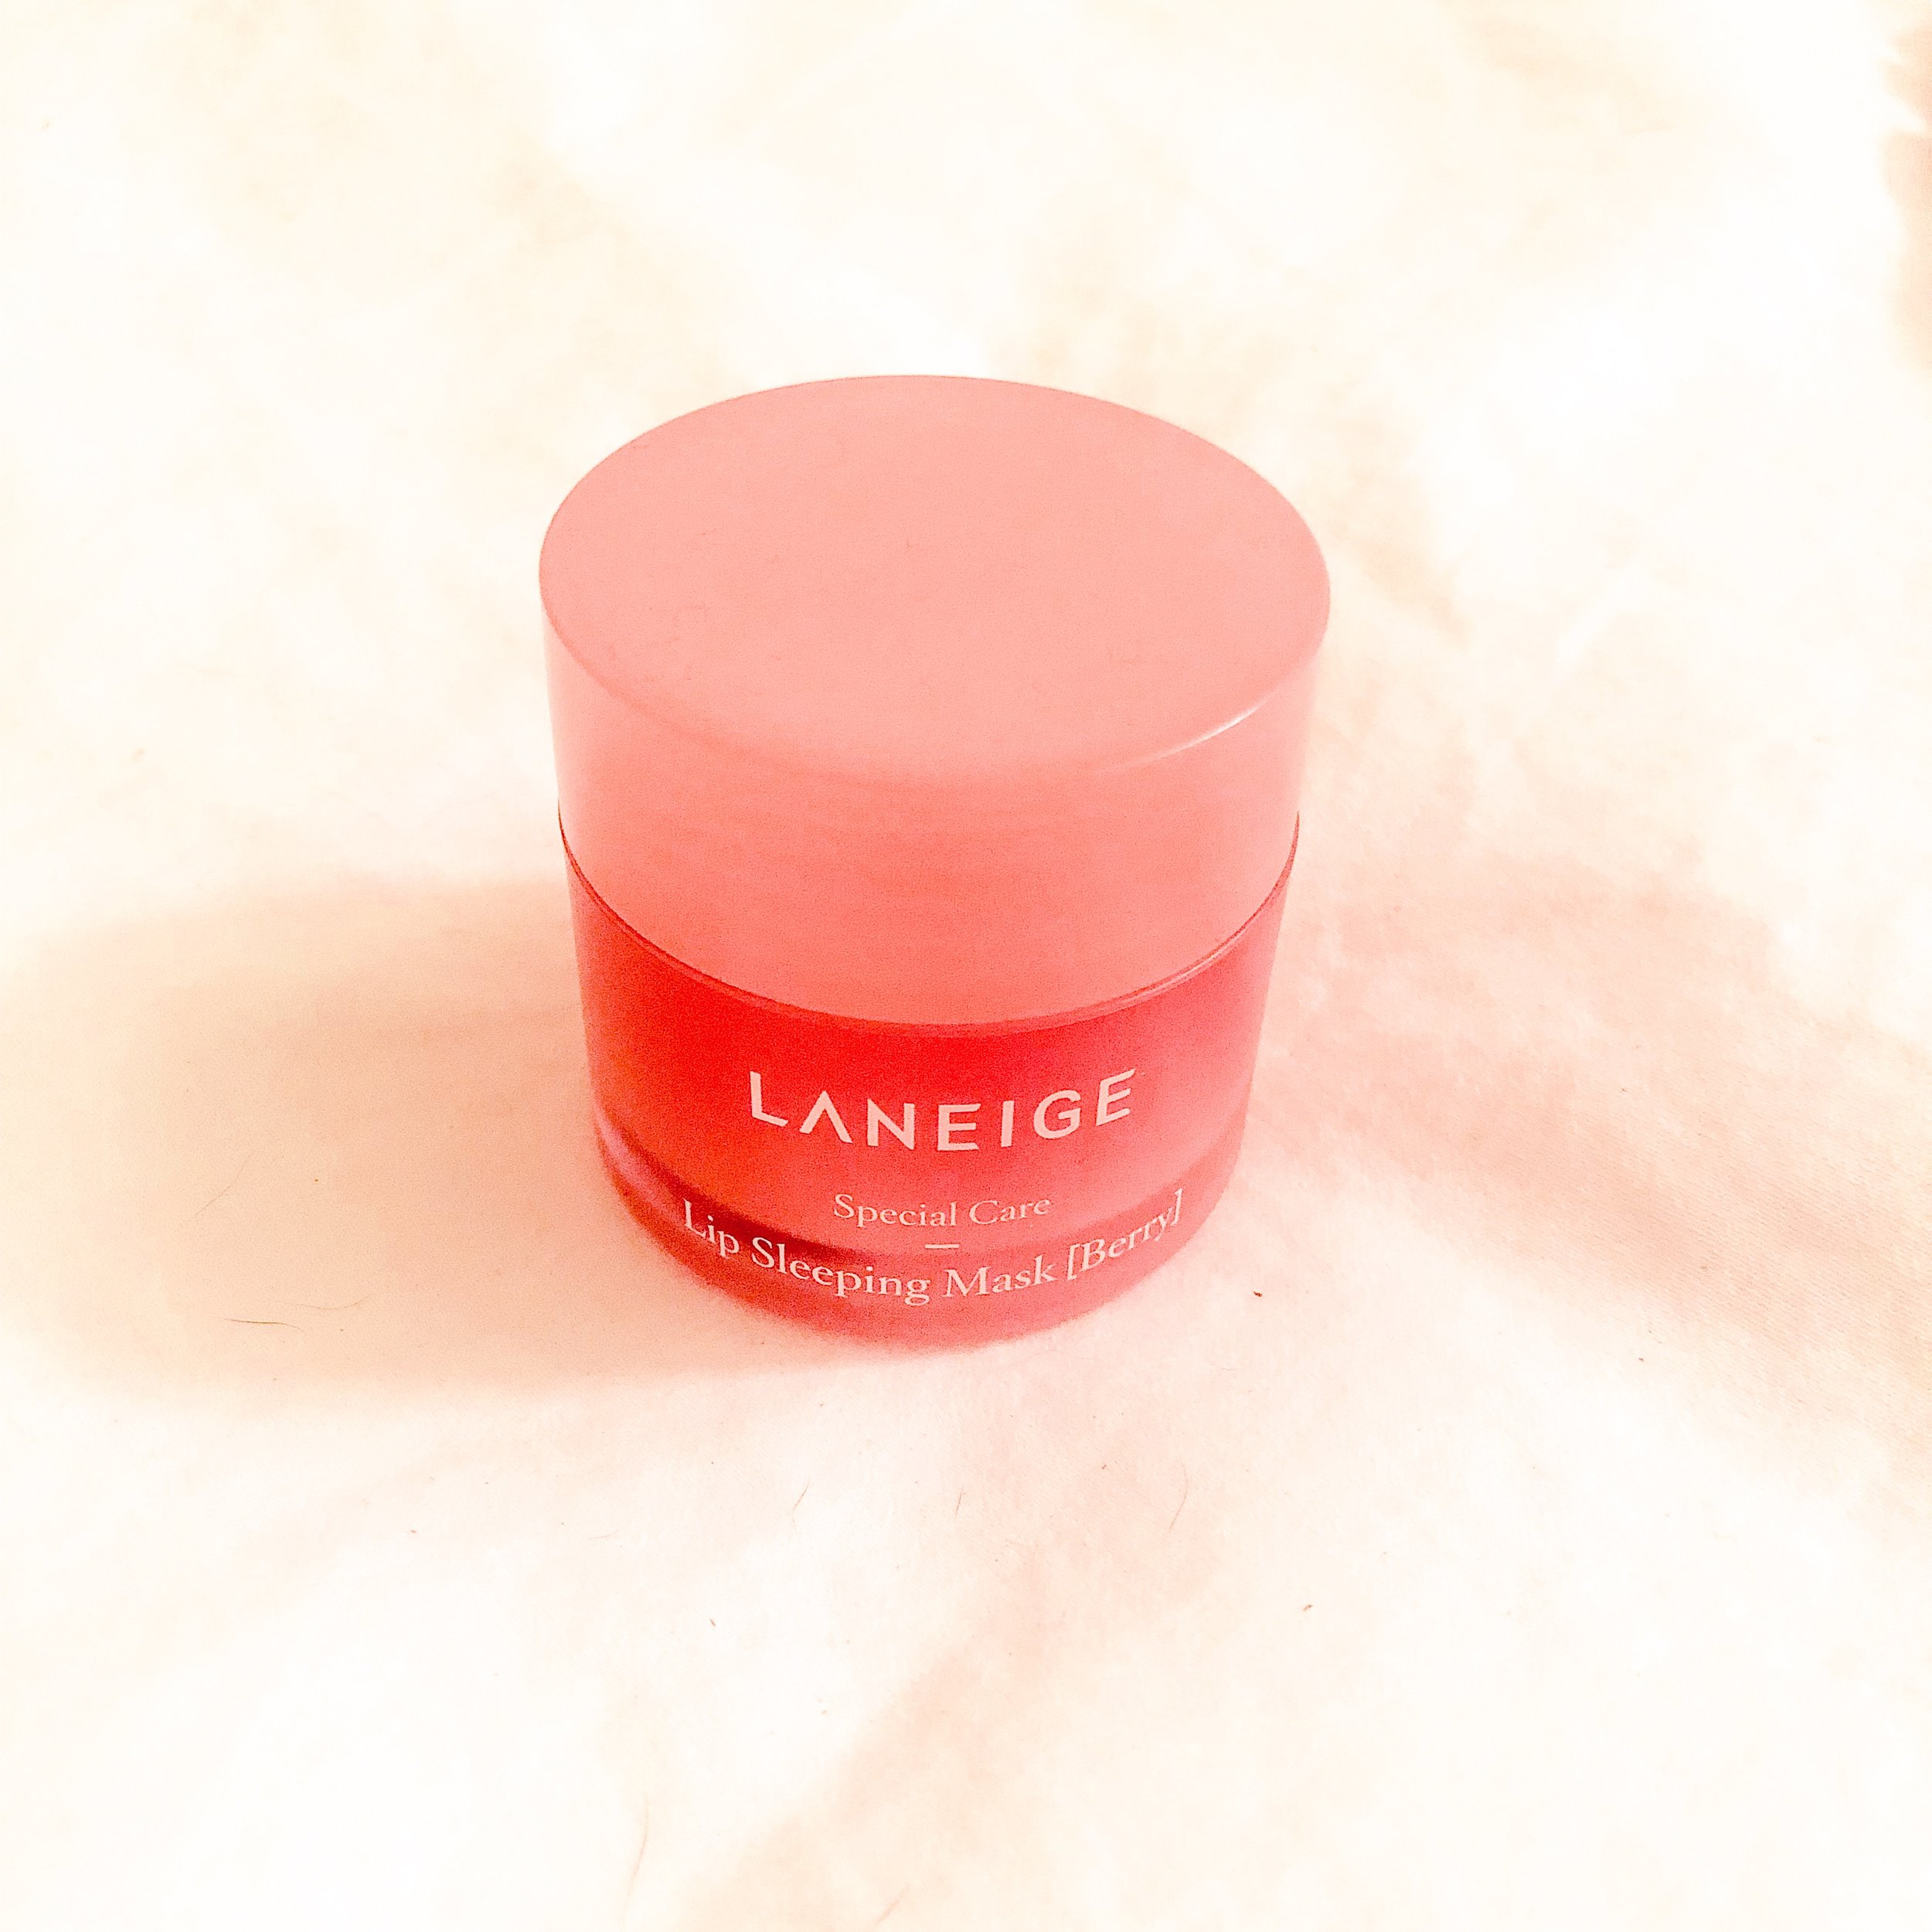 Very Berry (my fave) lip mask